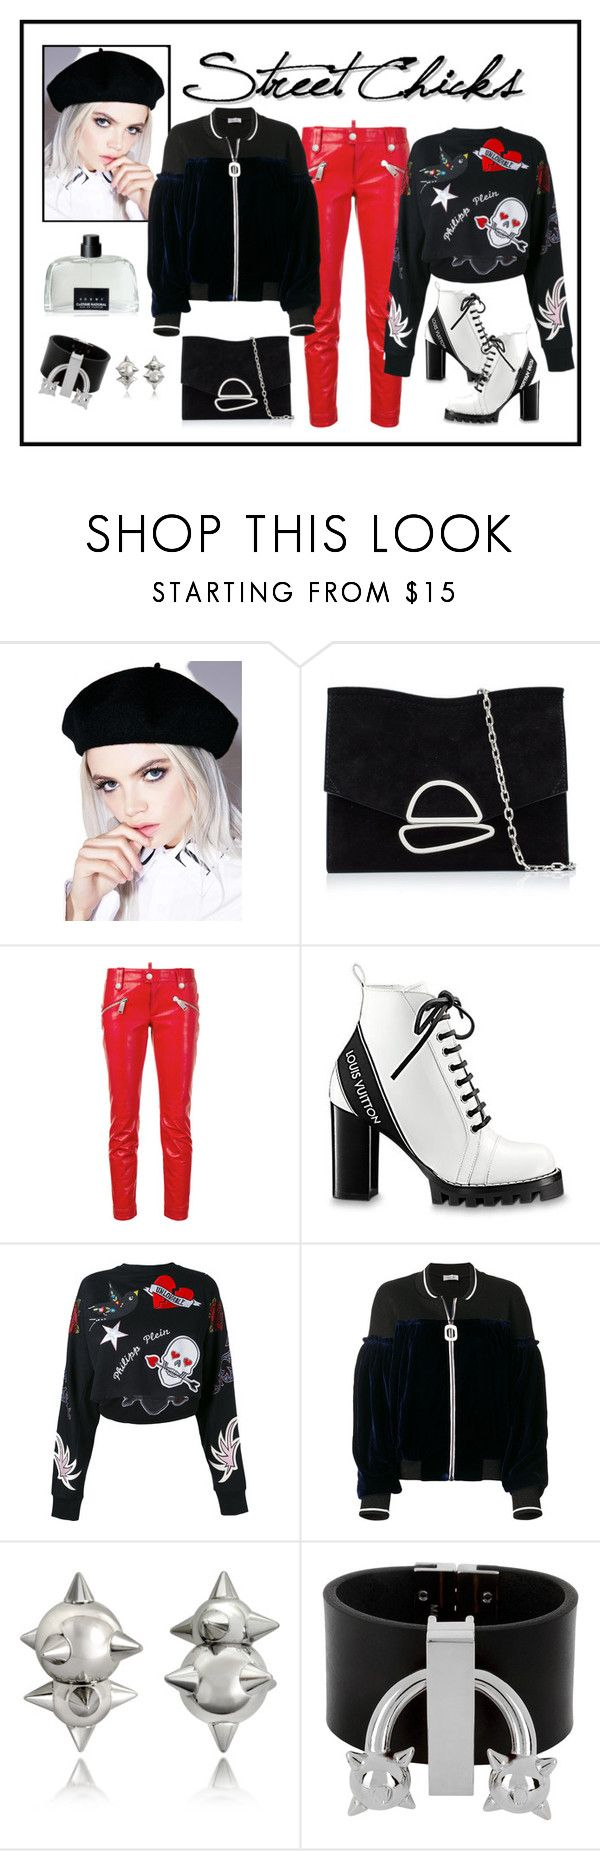 """""""Aviù Velvet Panel Bomber Jacket Look"""" by romaboots-1 ❤ liked on Polyvore featuring Ana Accessories, Proenza Schouler, Dsquared2, Philipp Plein, Aviù and COSTUME NATIONAL"""